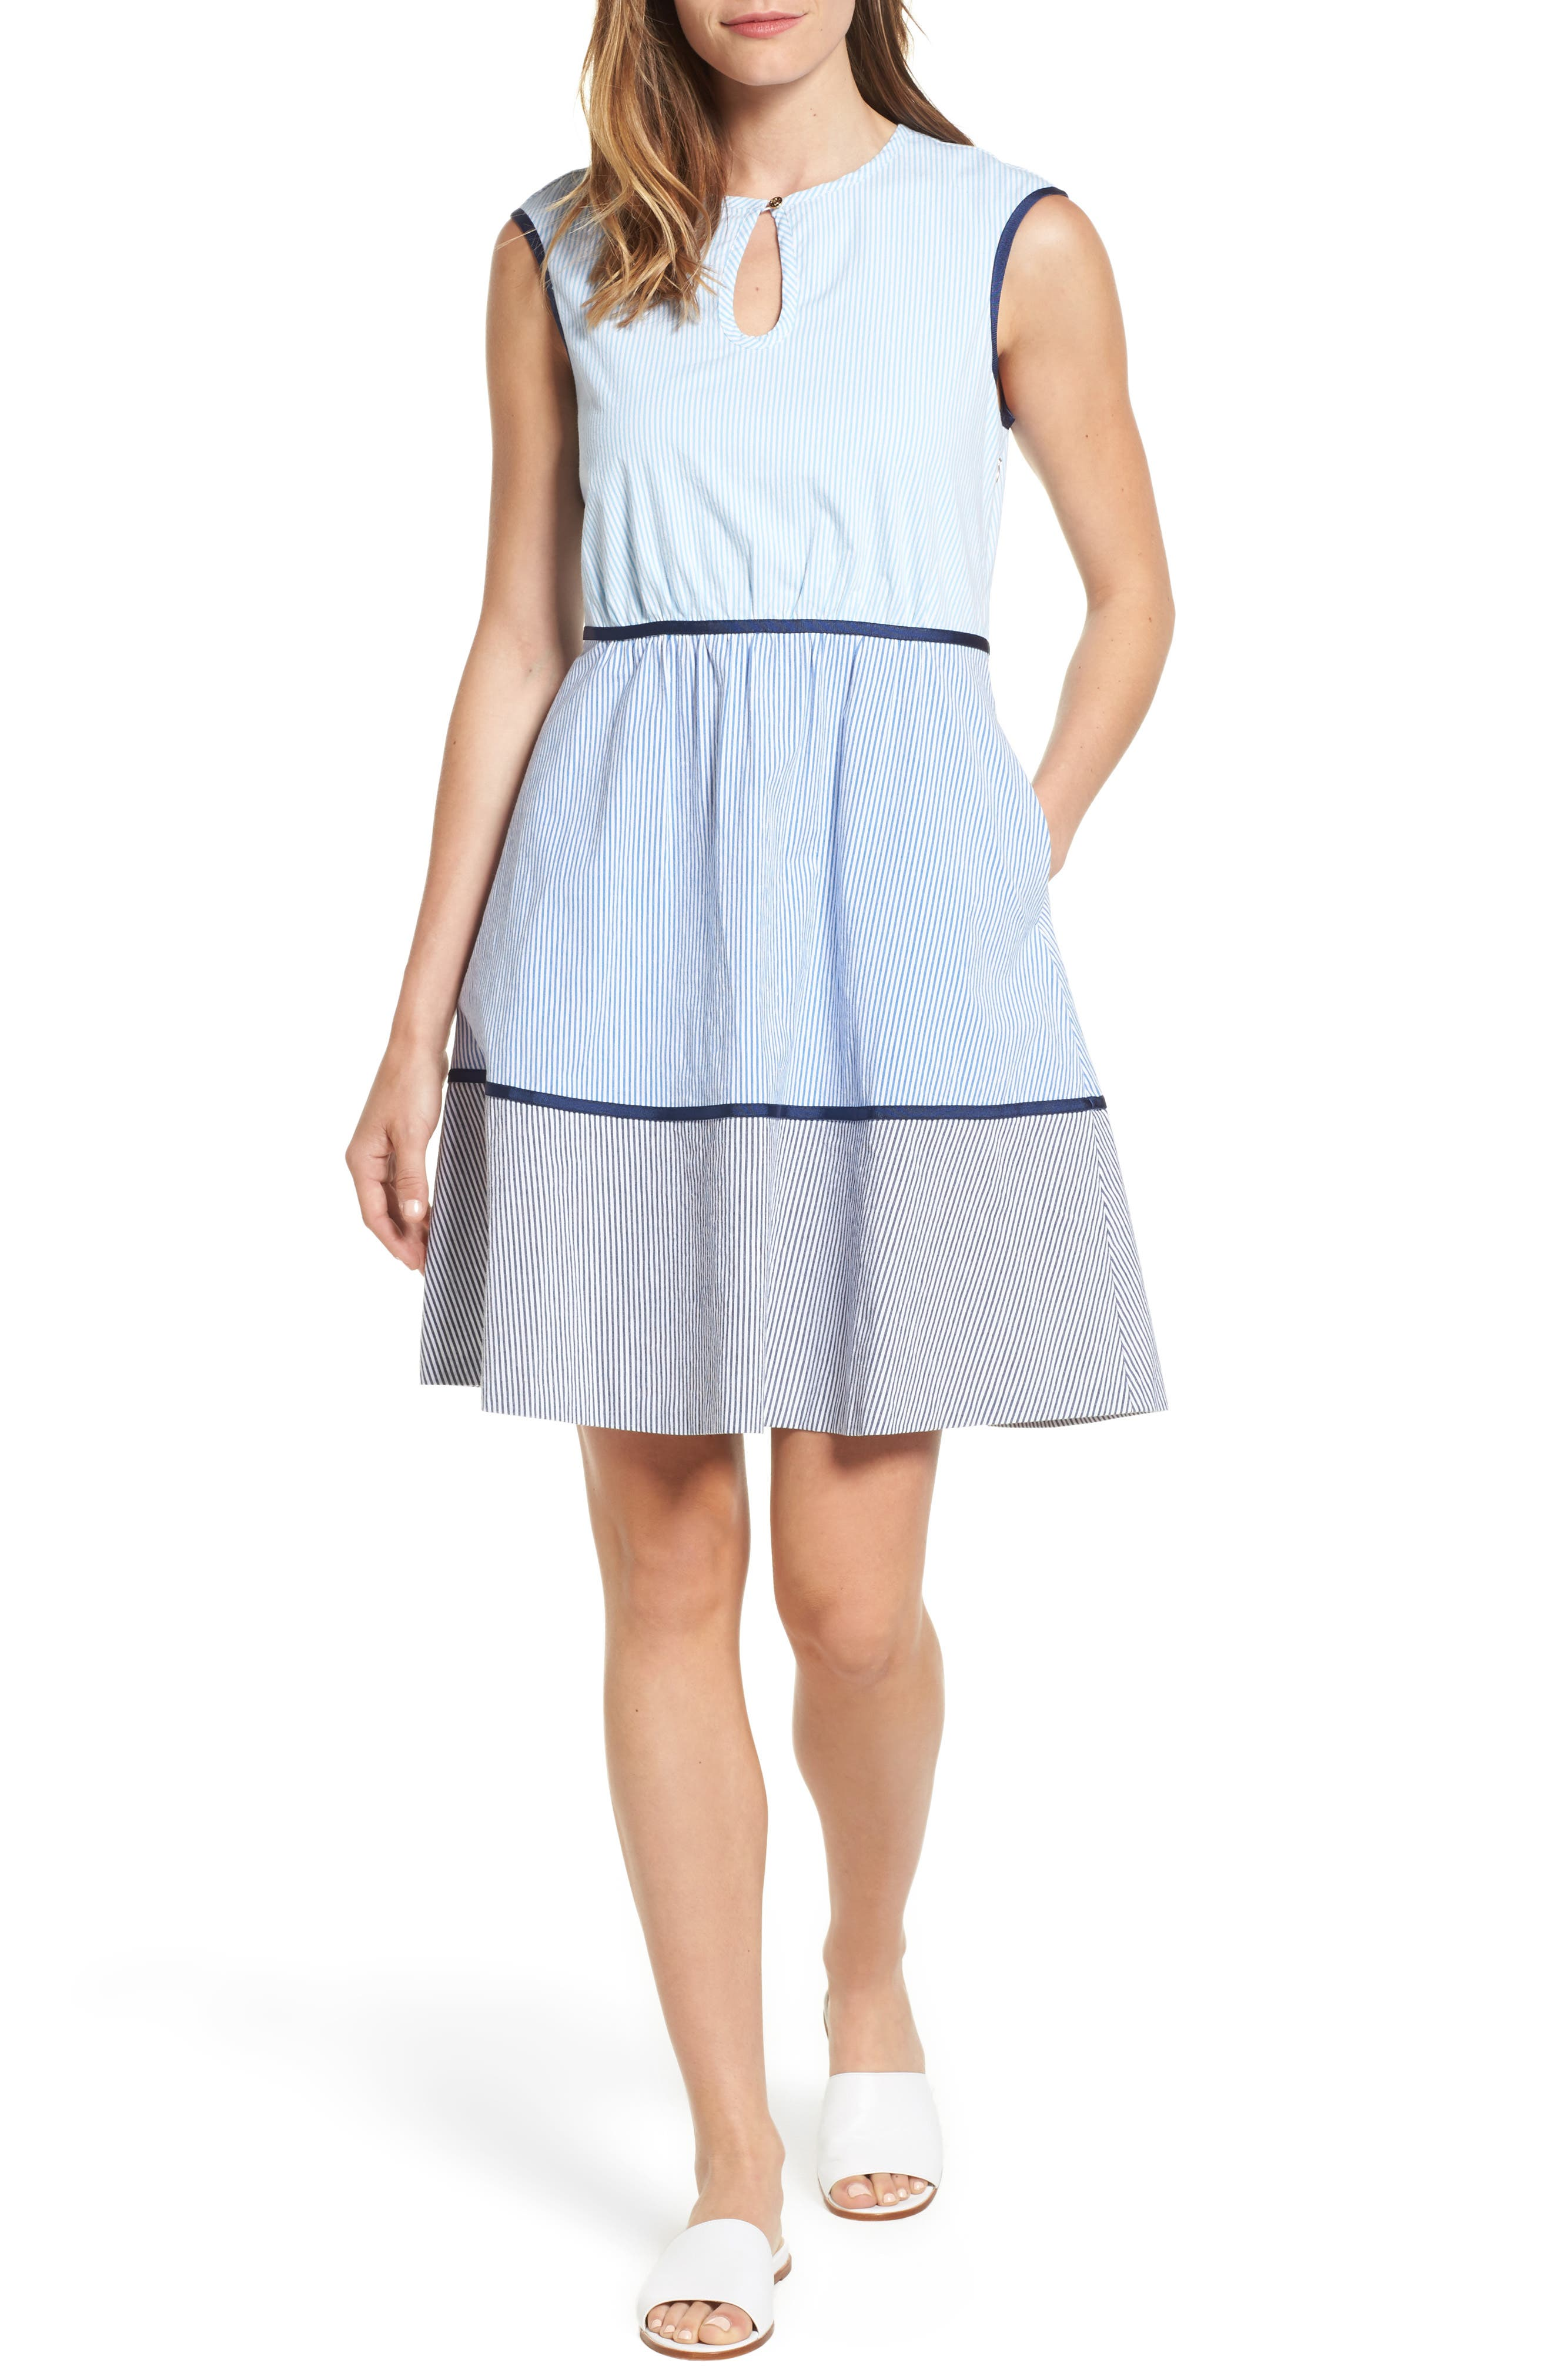 Draper James Sarabeth Seersucker Dress (Nordstrom Exclusive)